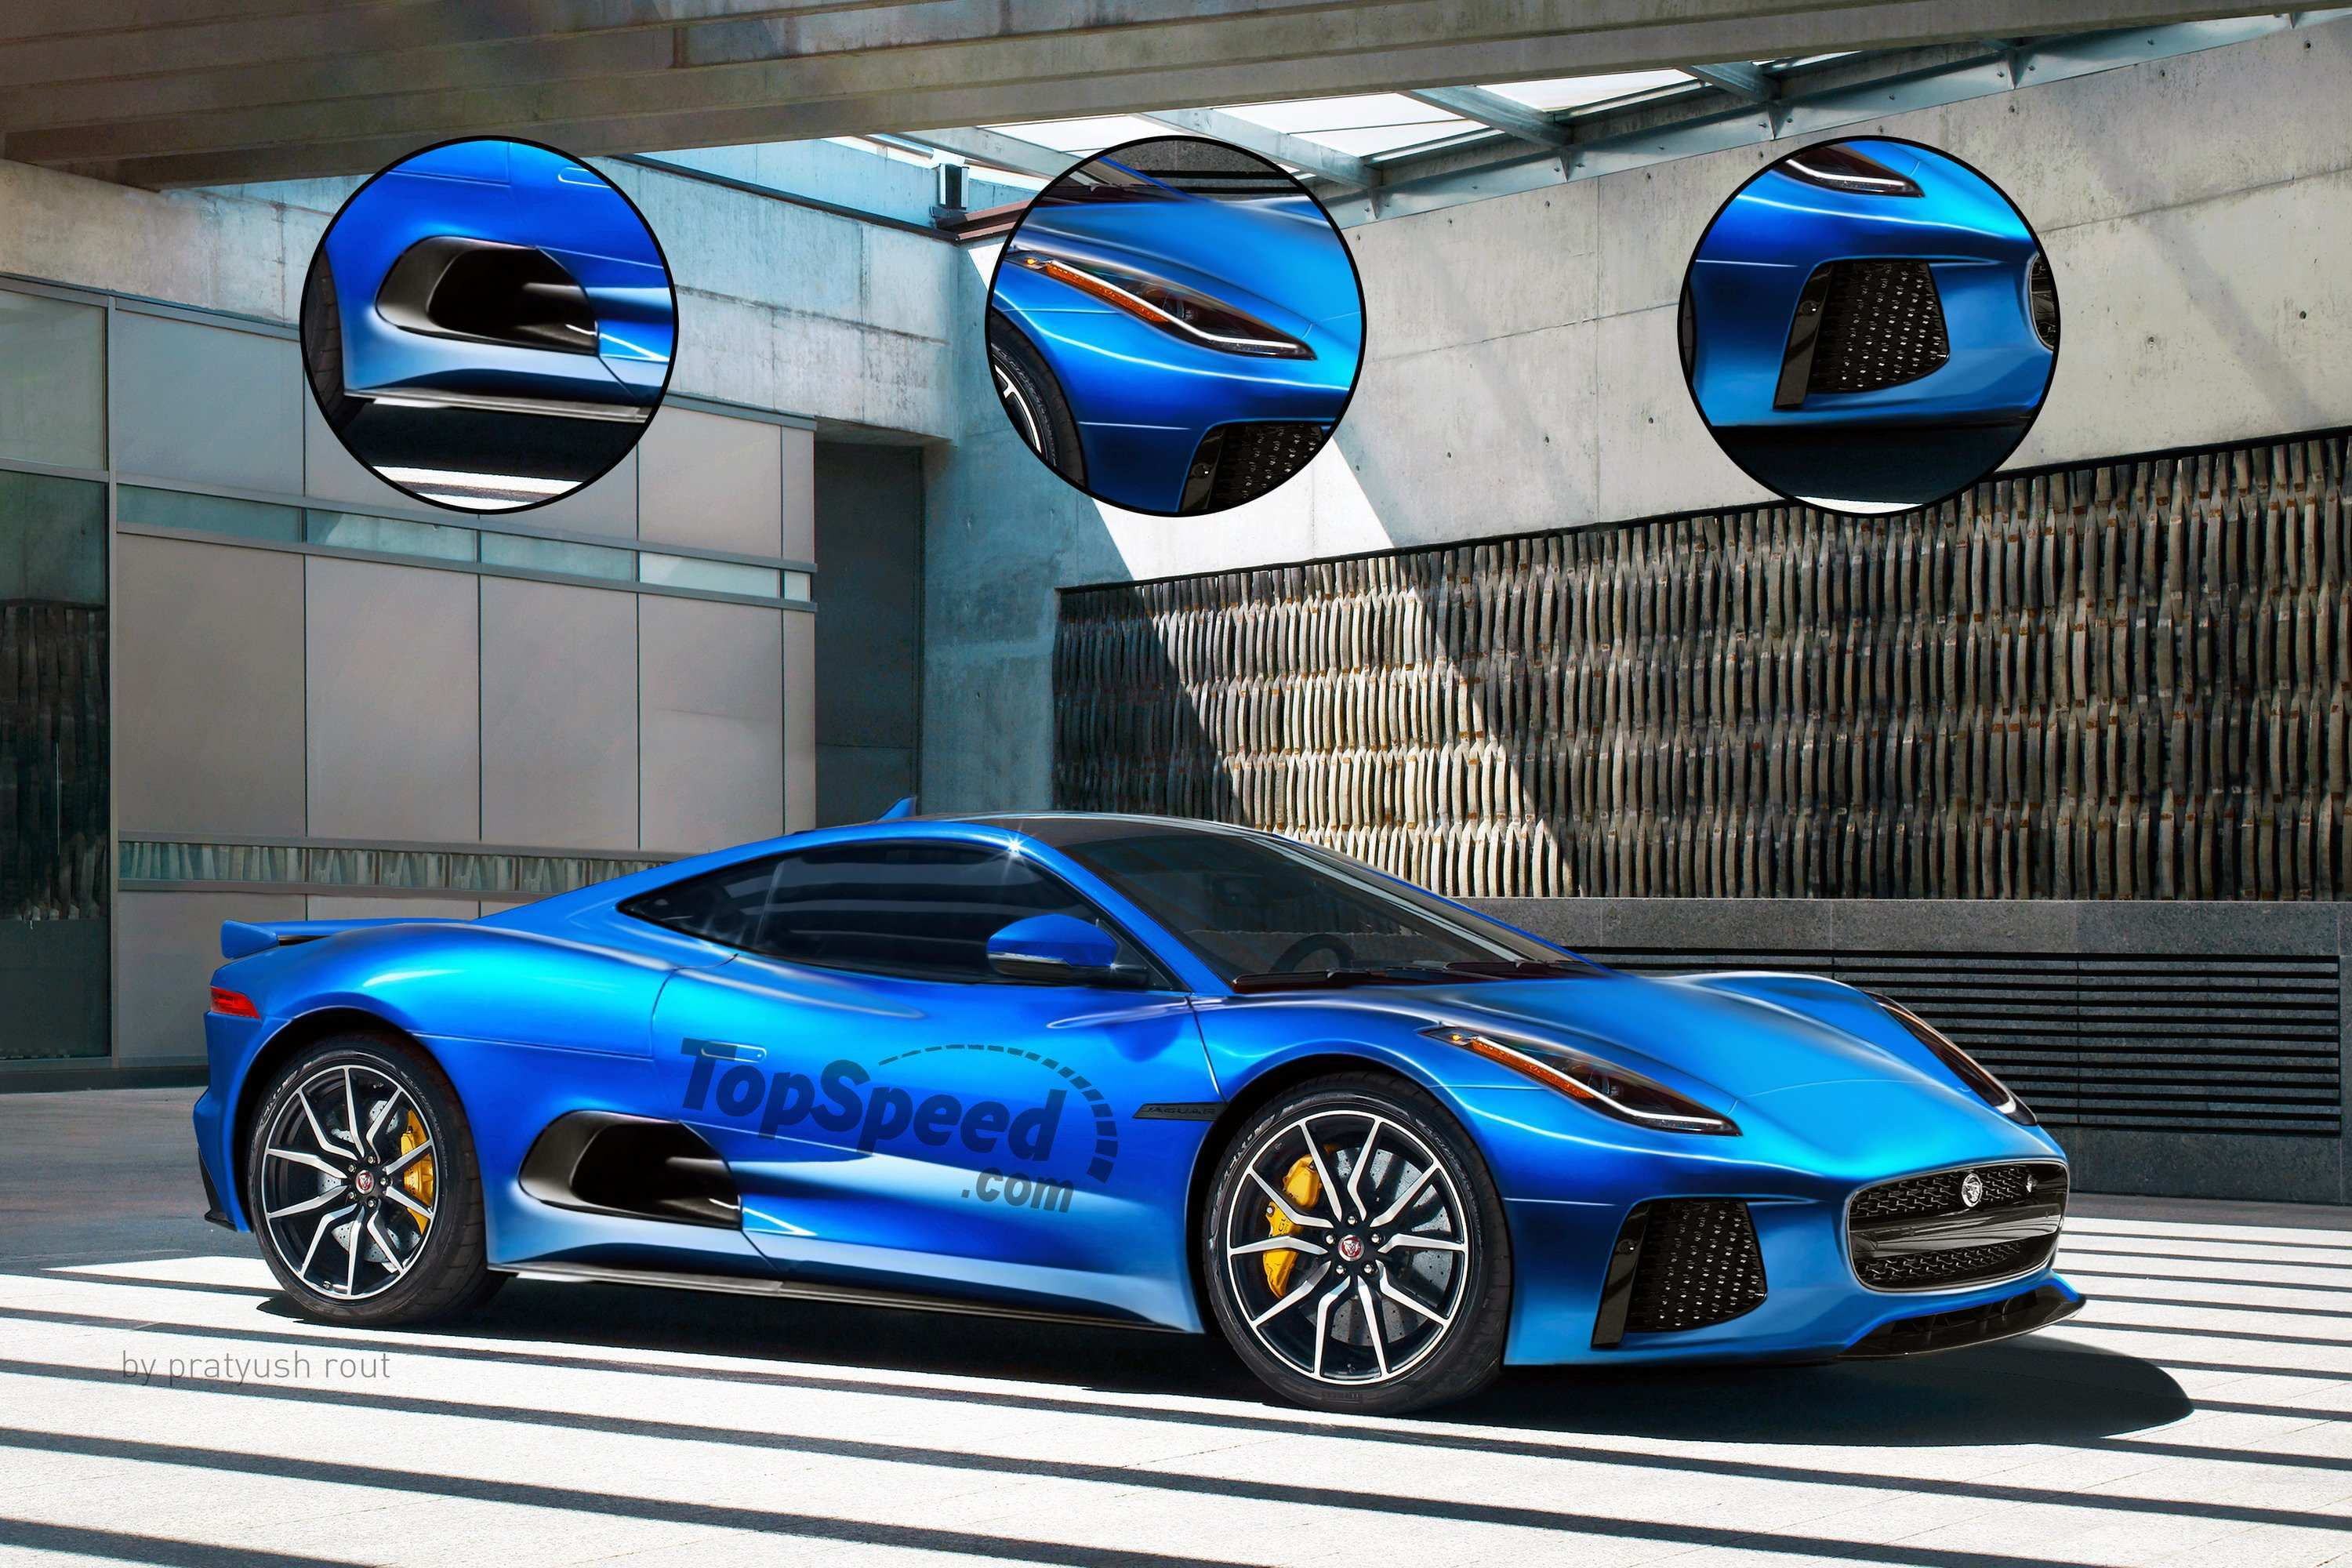 90 A Jaguar New Models 2020 Review And Release Date